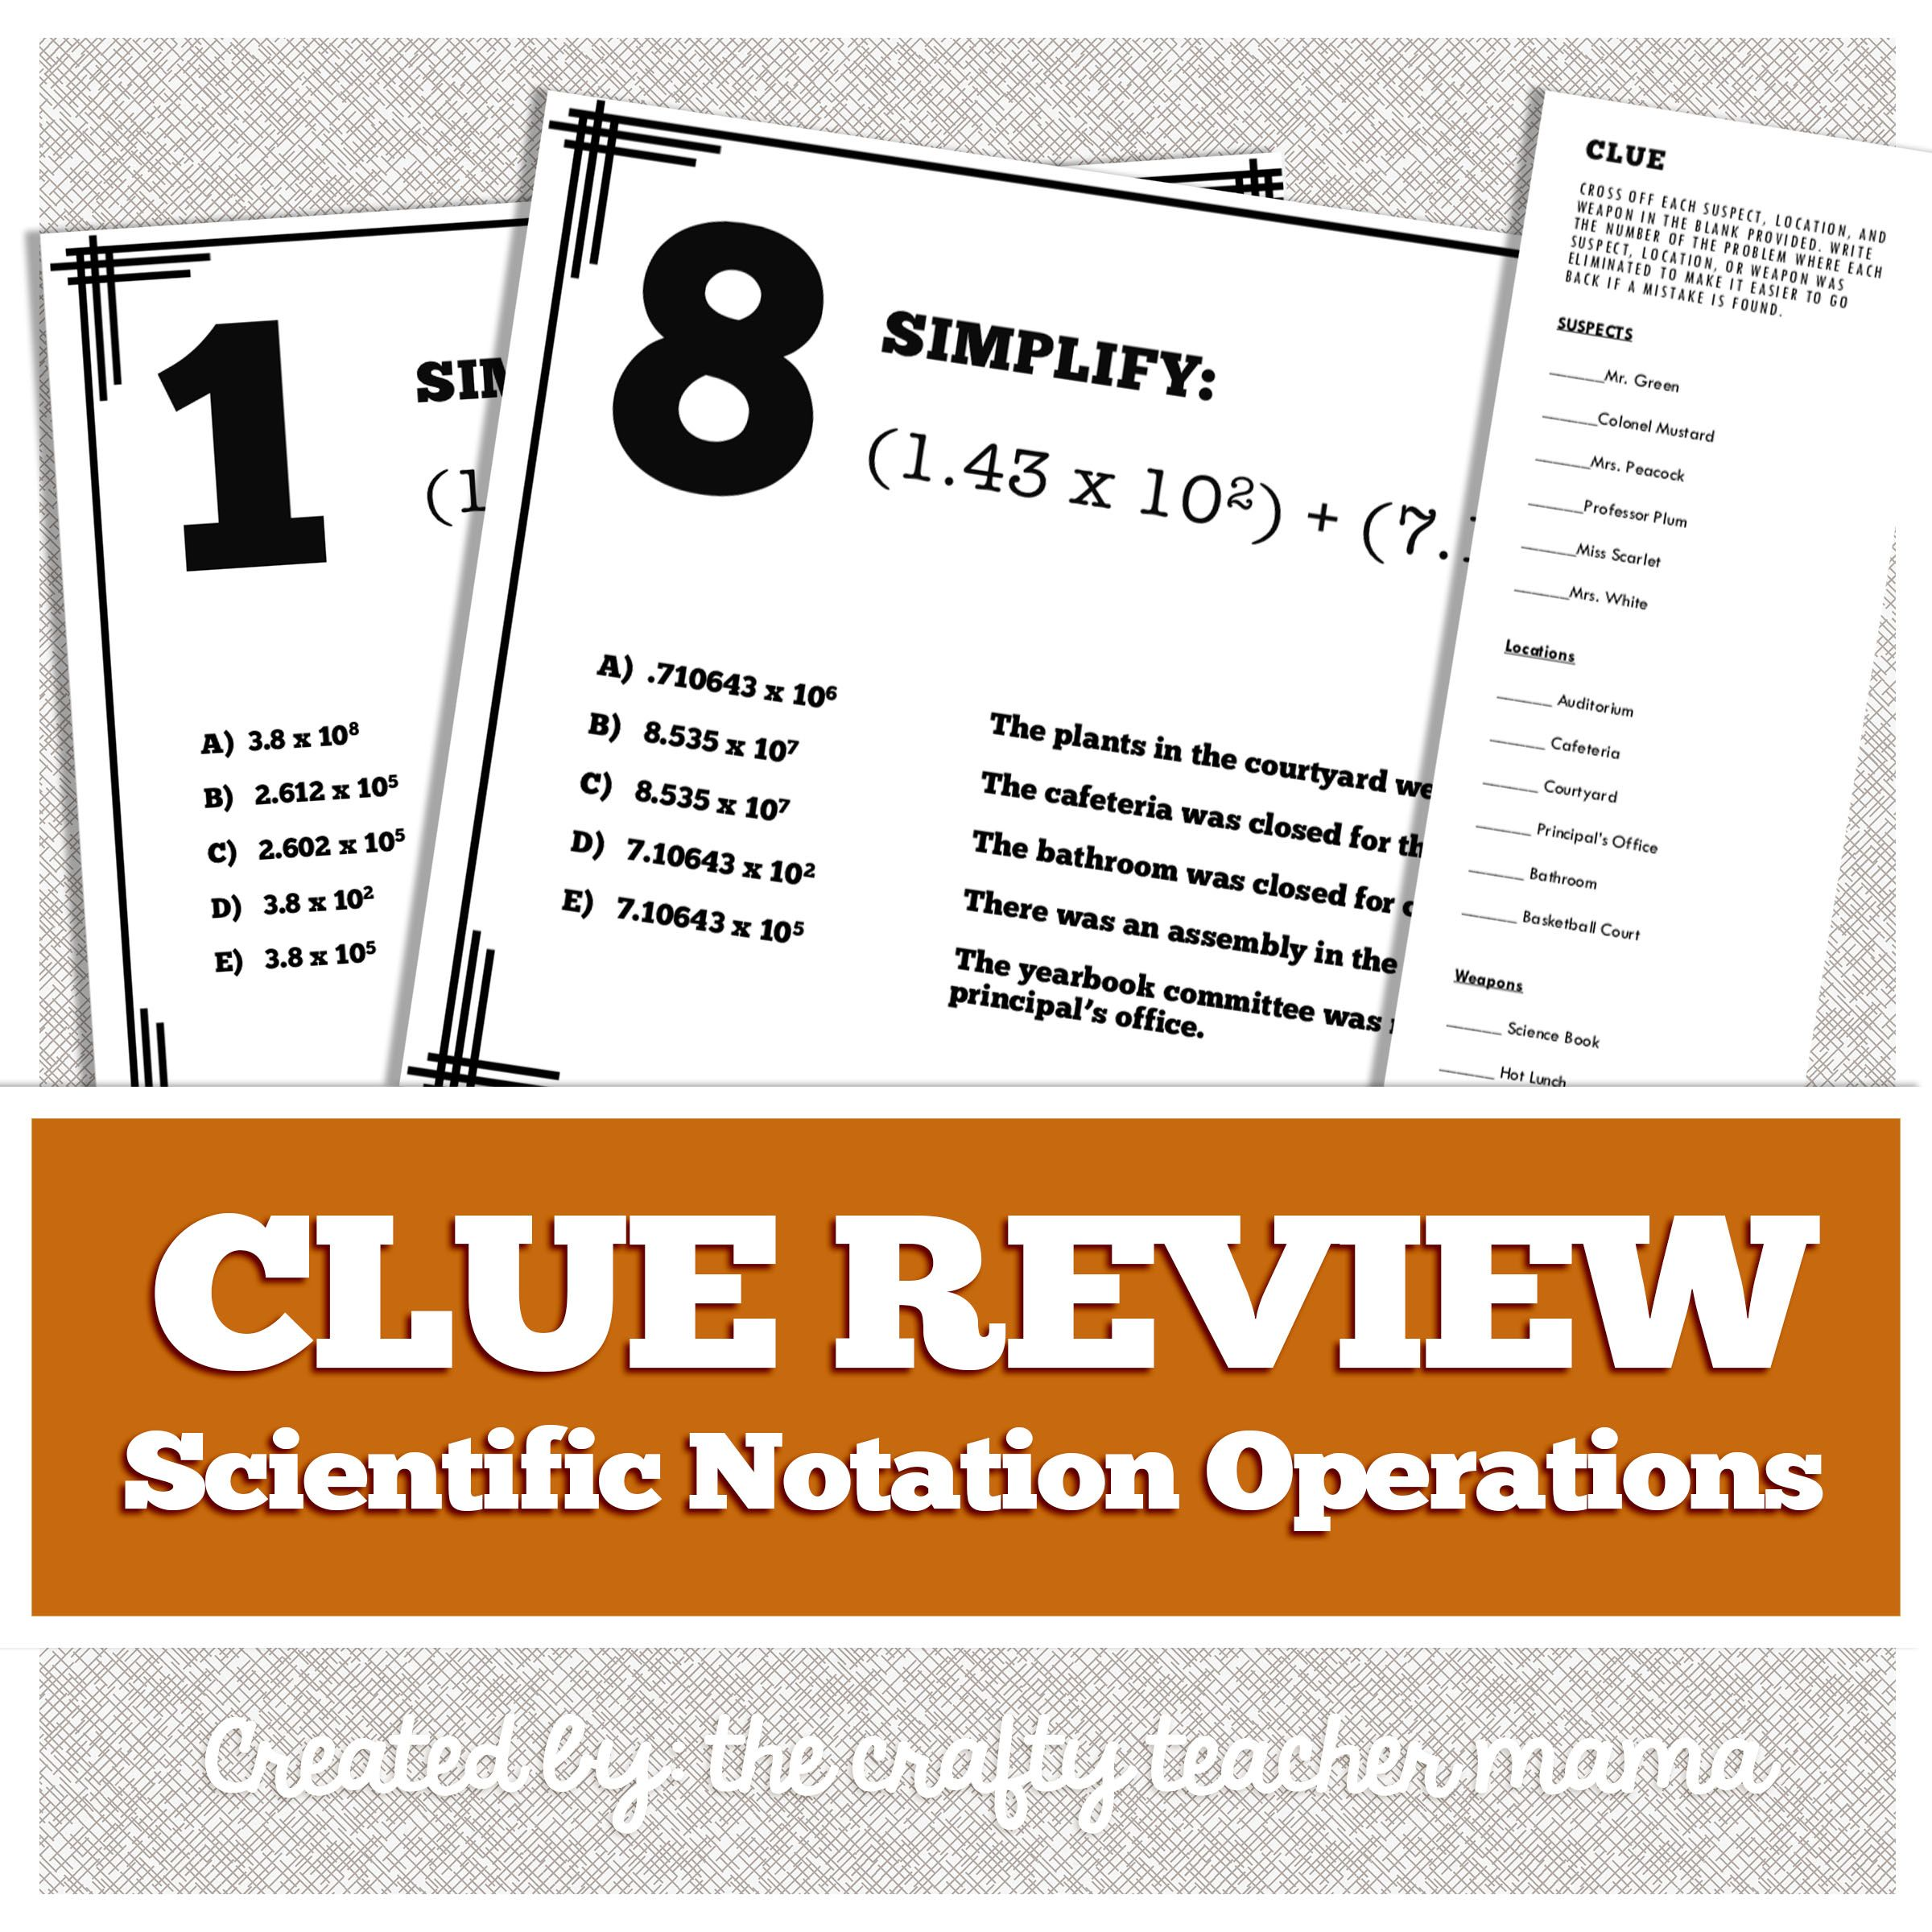 Scientific Notation Review Clue Game Walk Around Activity Common Core Scientific Notation Scientific Notation Operations Clue Games Adding subtracting scientific notation